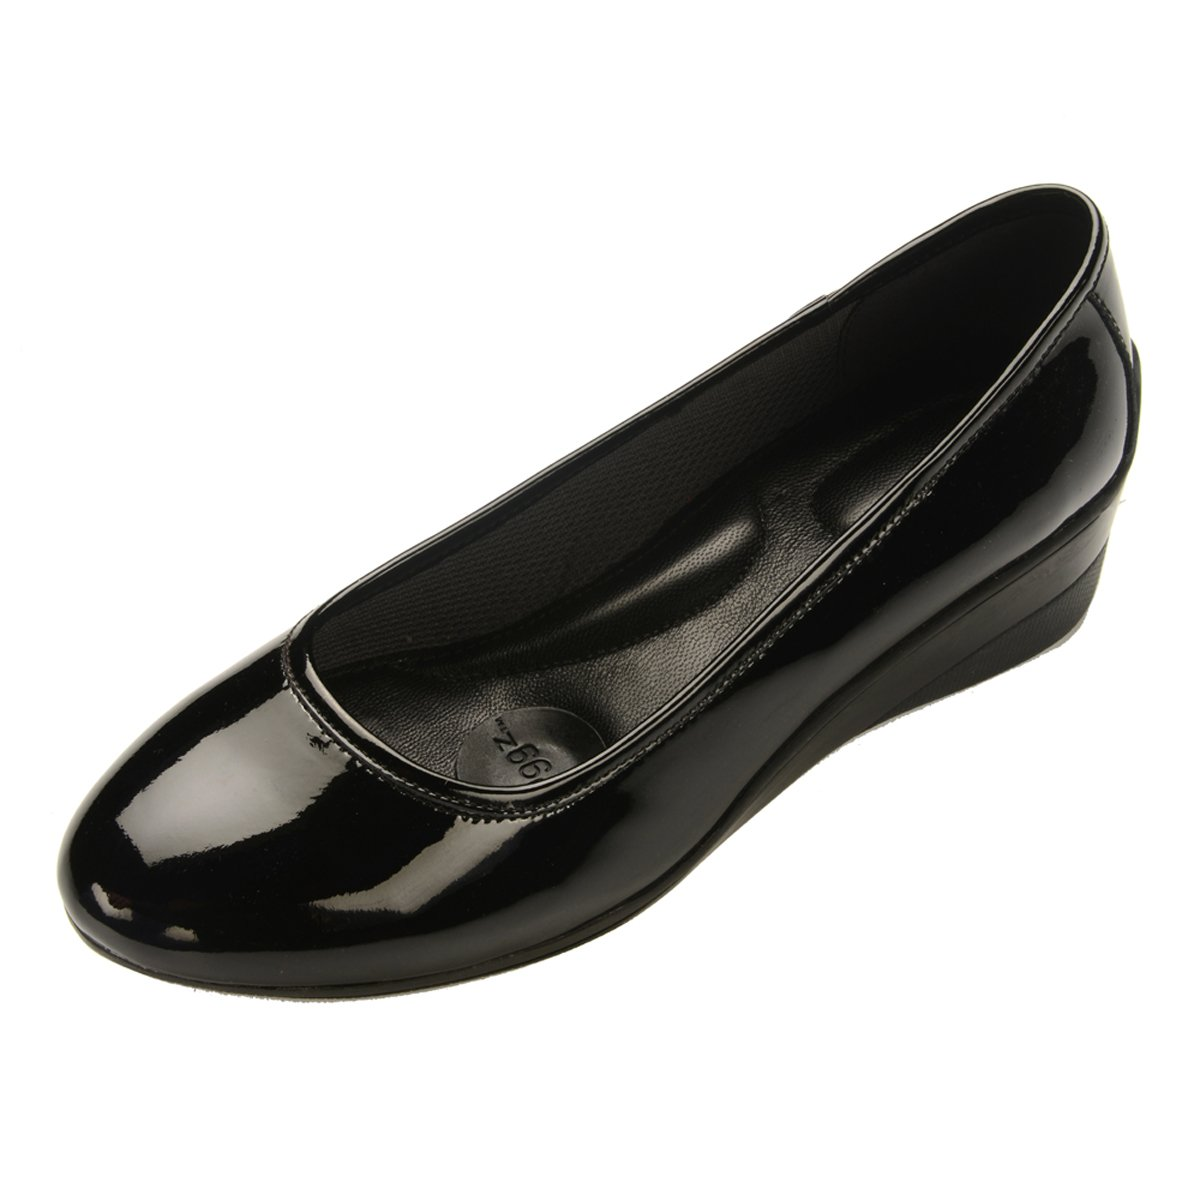 pluggz Black Patent Leather 2 inch Grounding Wedge 7 M US